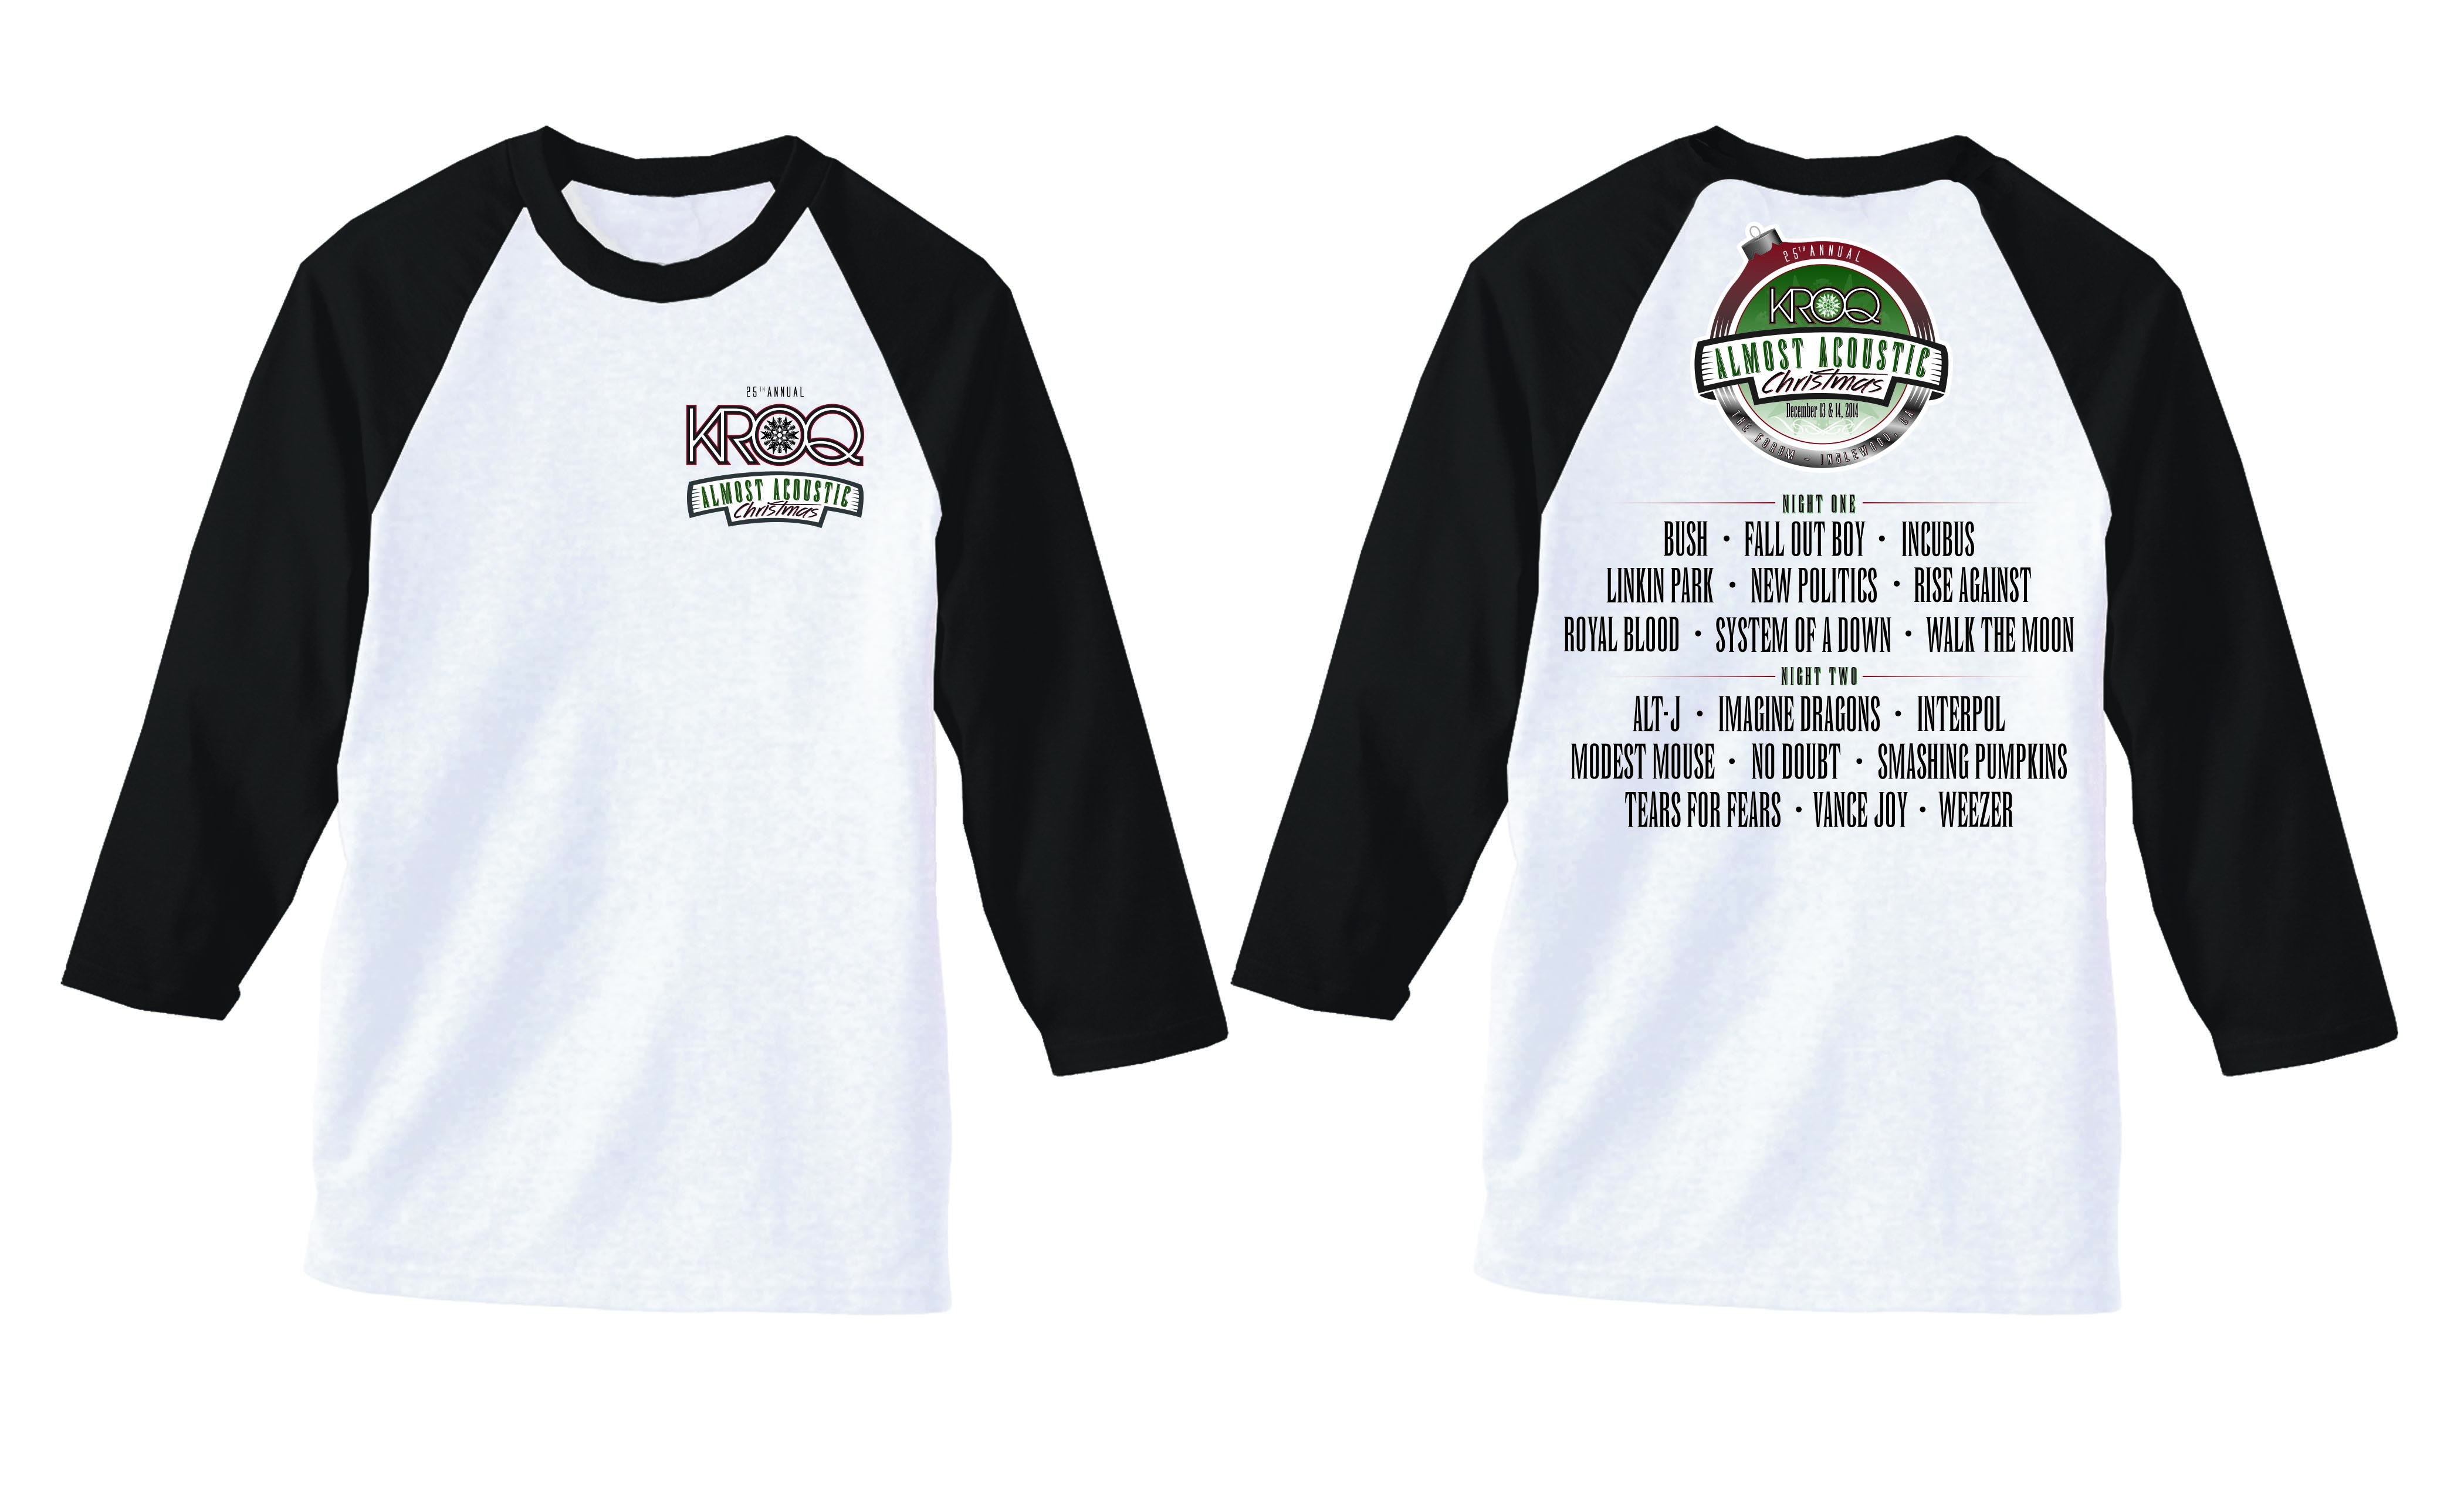 KROQ-AAC-2014-Merch-baseball-tee-3.jpg